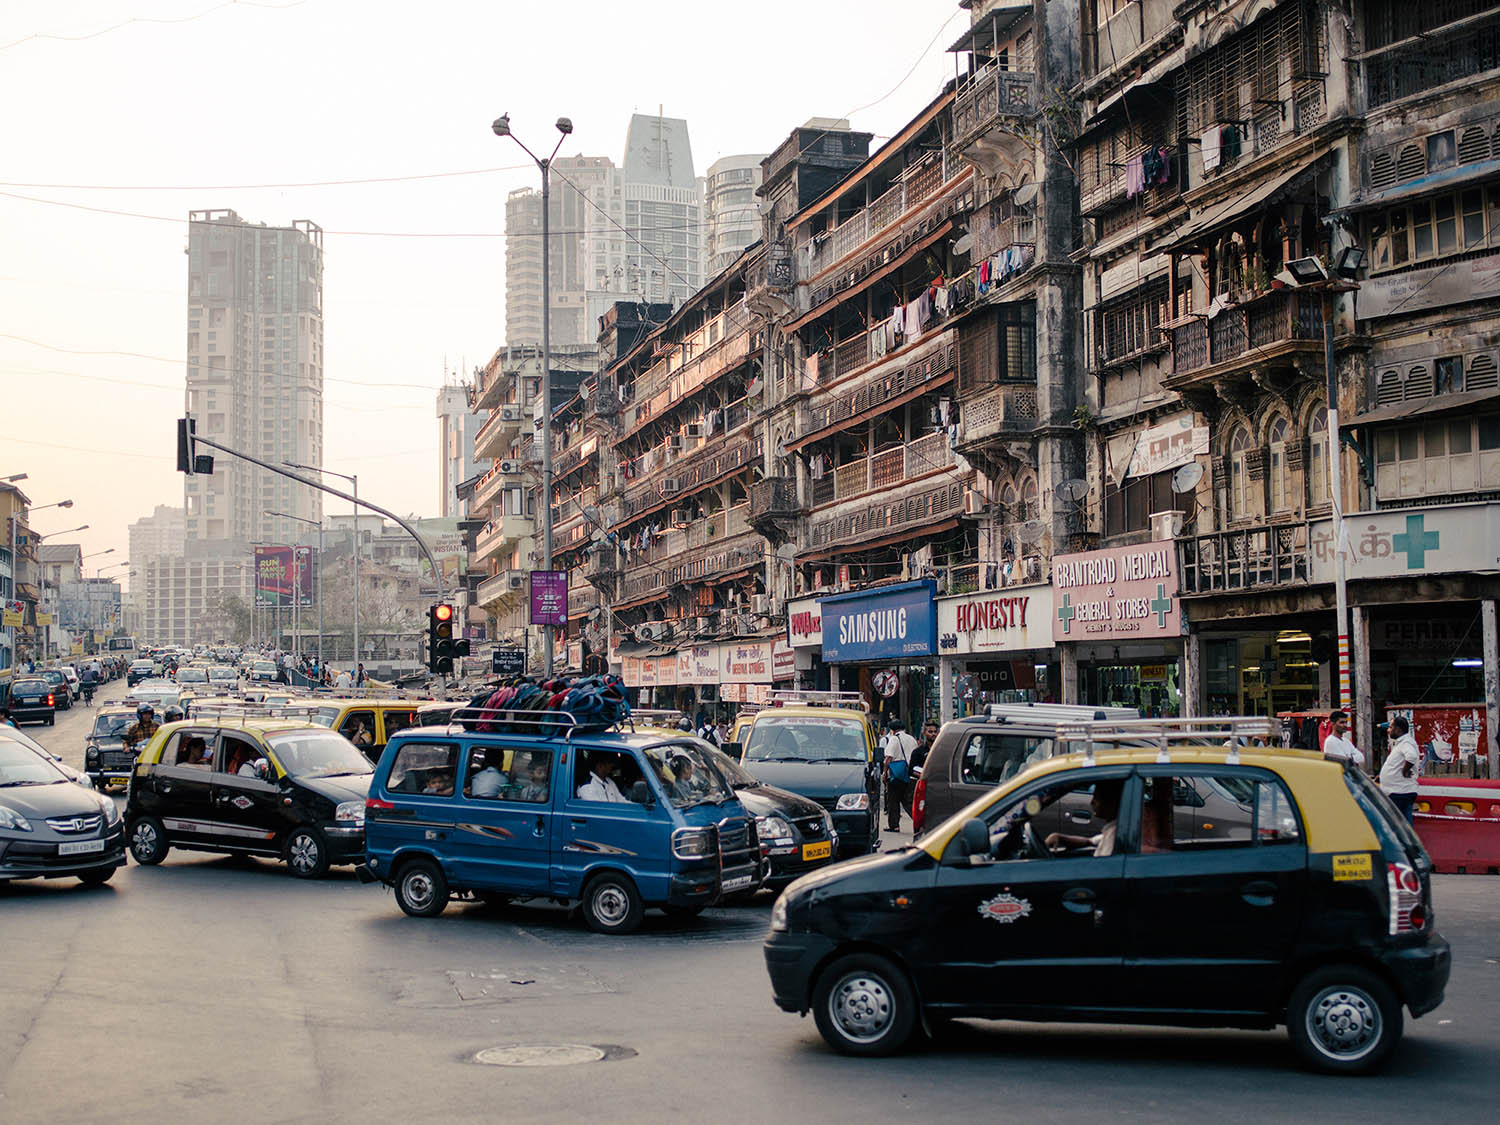 Traffic in India: Chaotic and crazy.